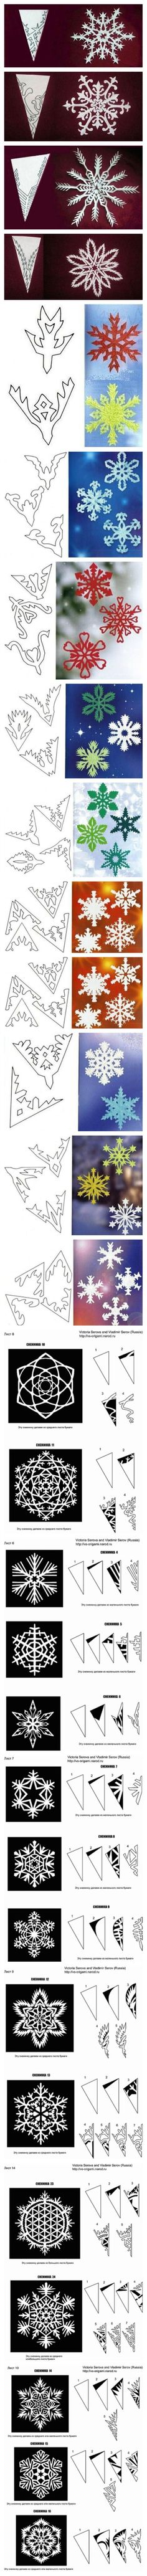 do you remember making snowflakes from notebook paper in grade school?  Someone has taken a lot of time to create this infographic that details had to make very specialized designs - amazing